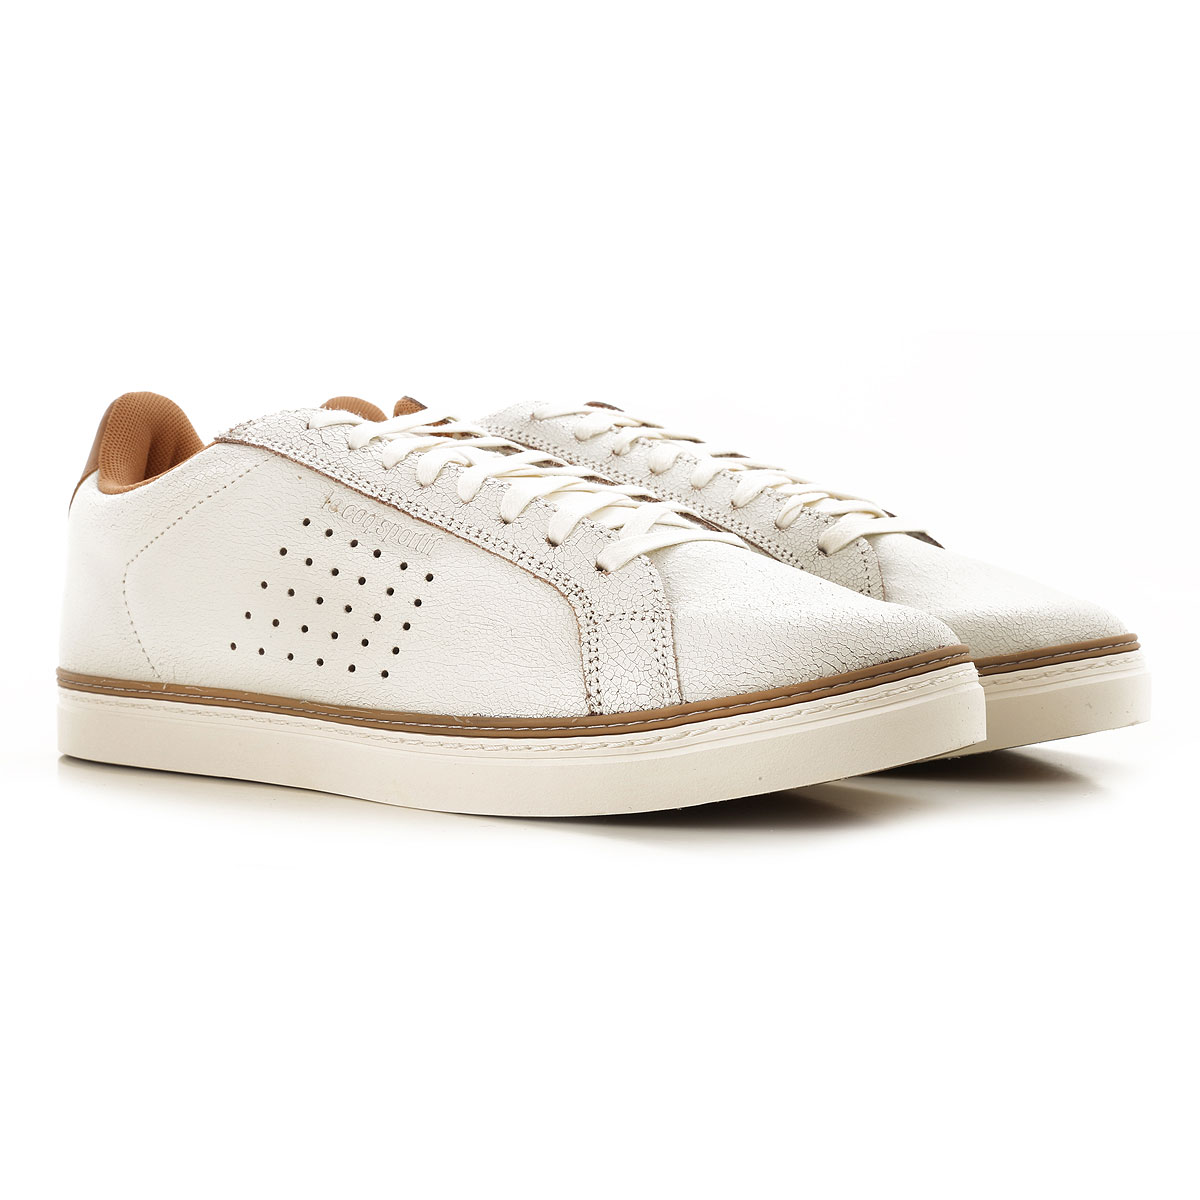 Image of Le Coq Sportif Sneakers for Men, White, Leather, 2017, 10 8 9